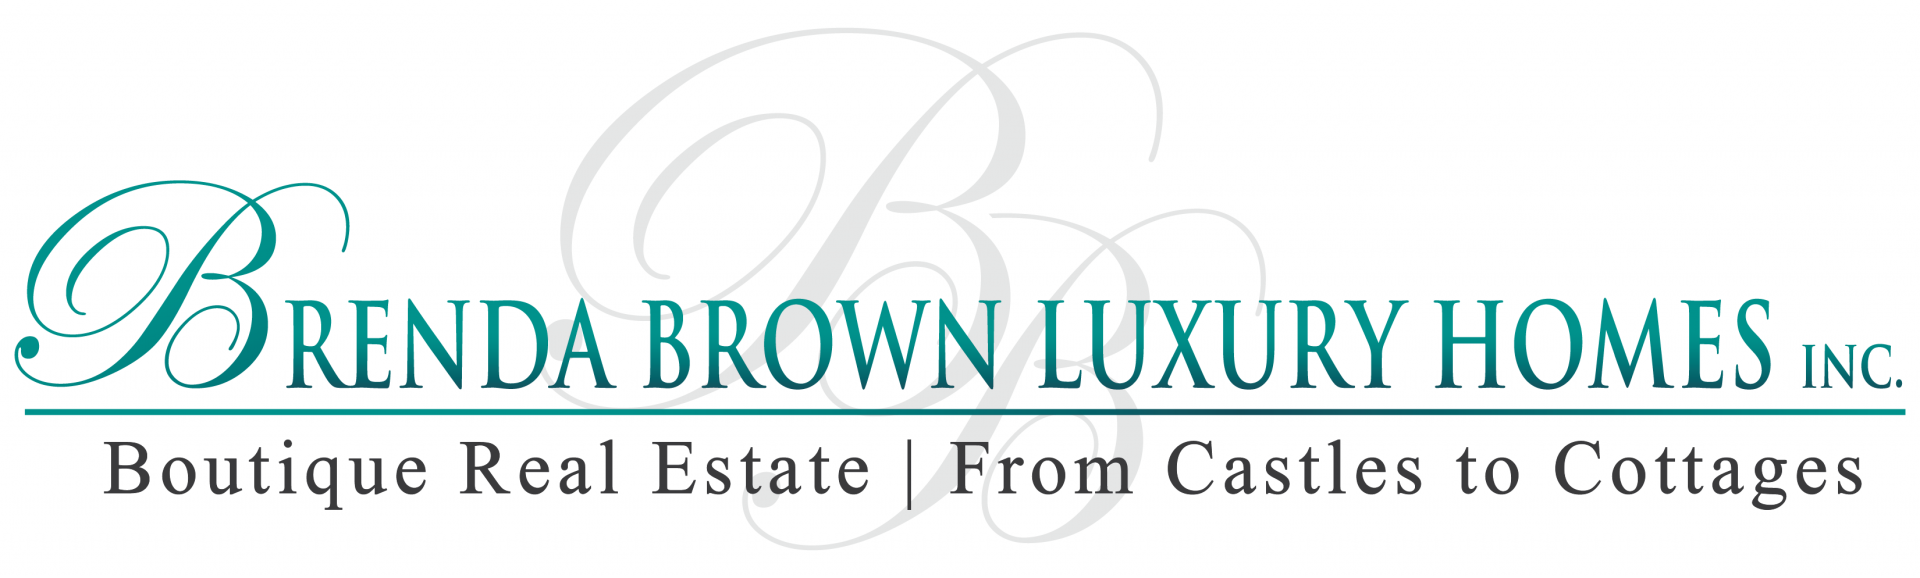 Brenda Brown Luxury Homes logo